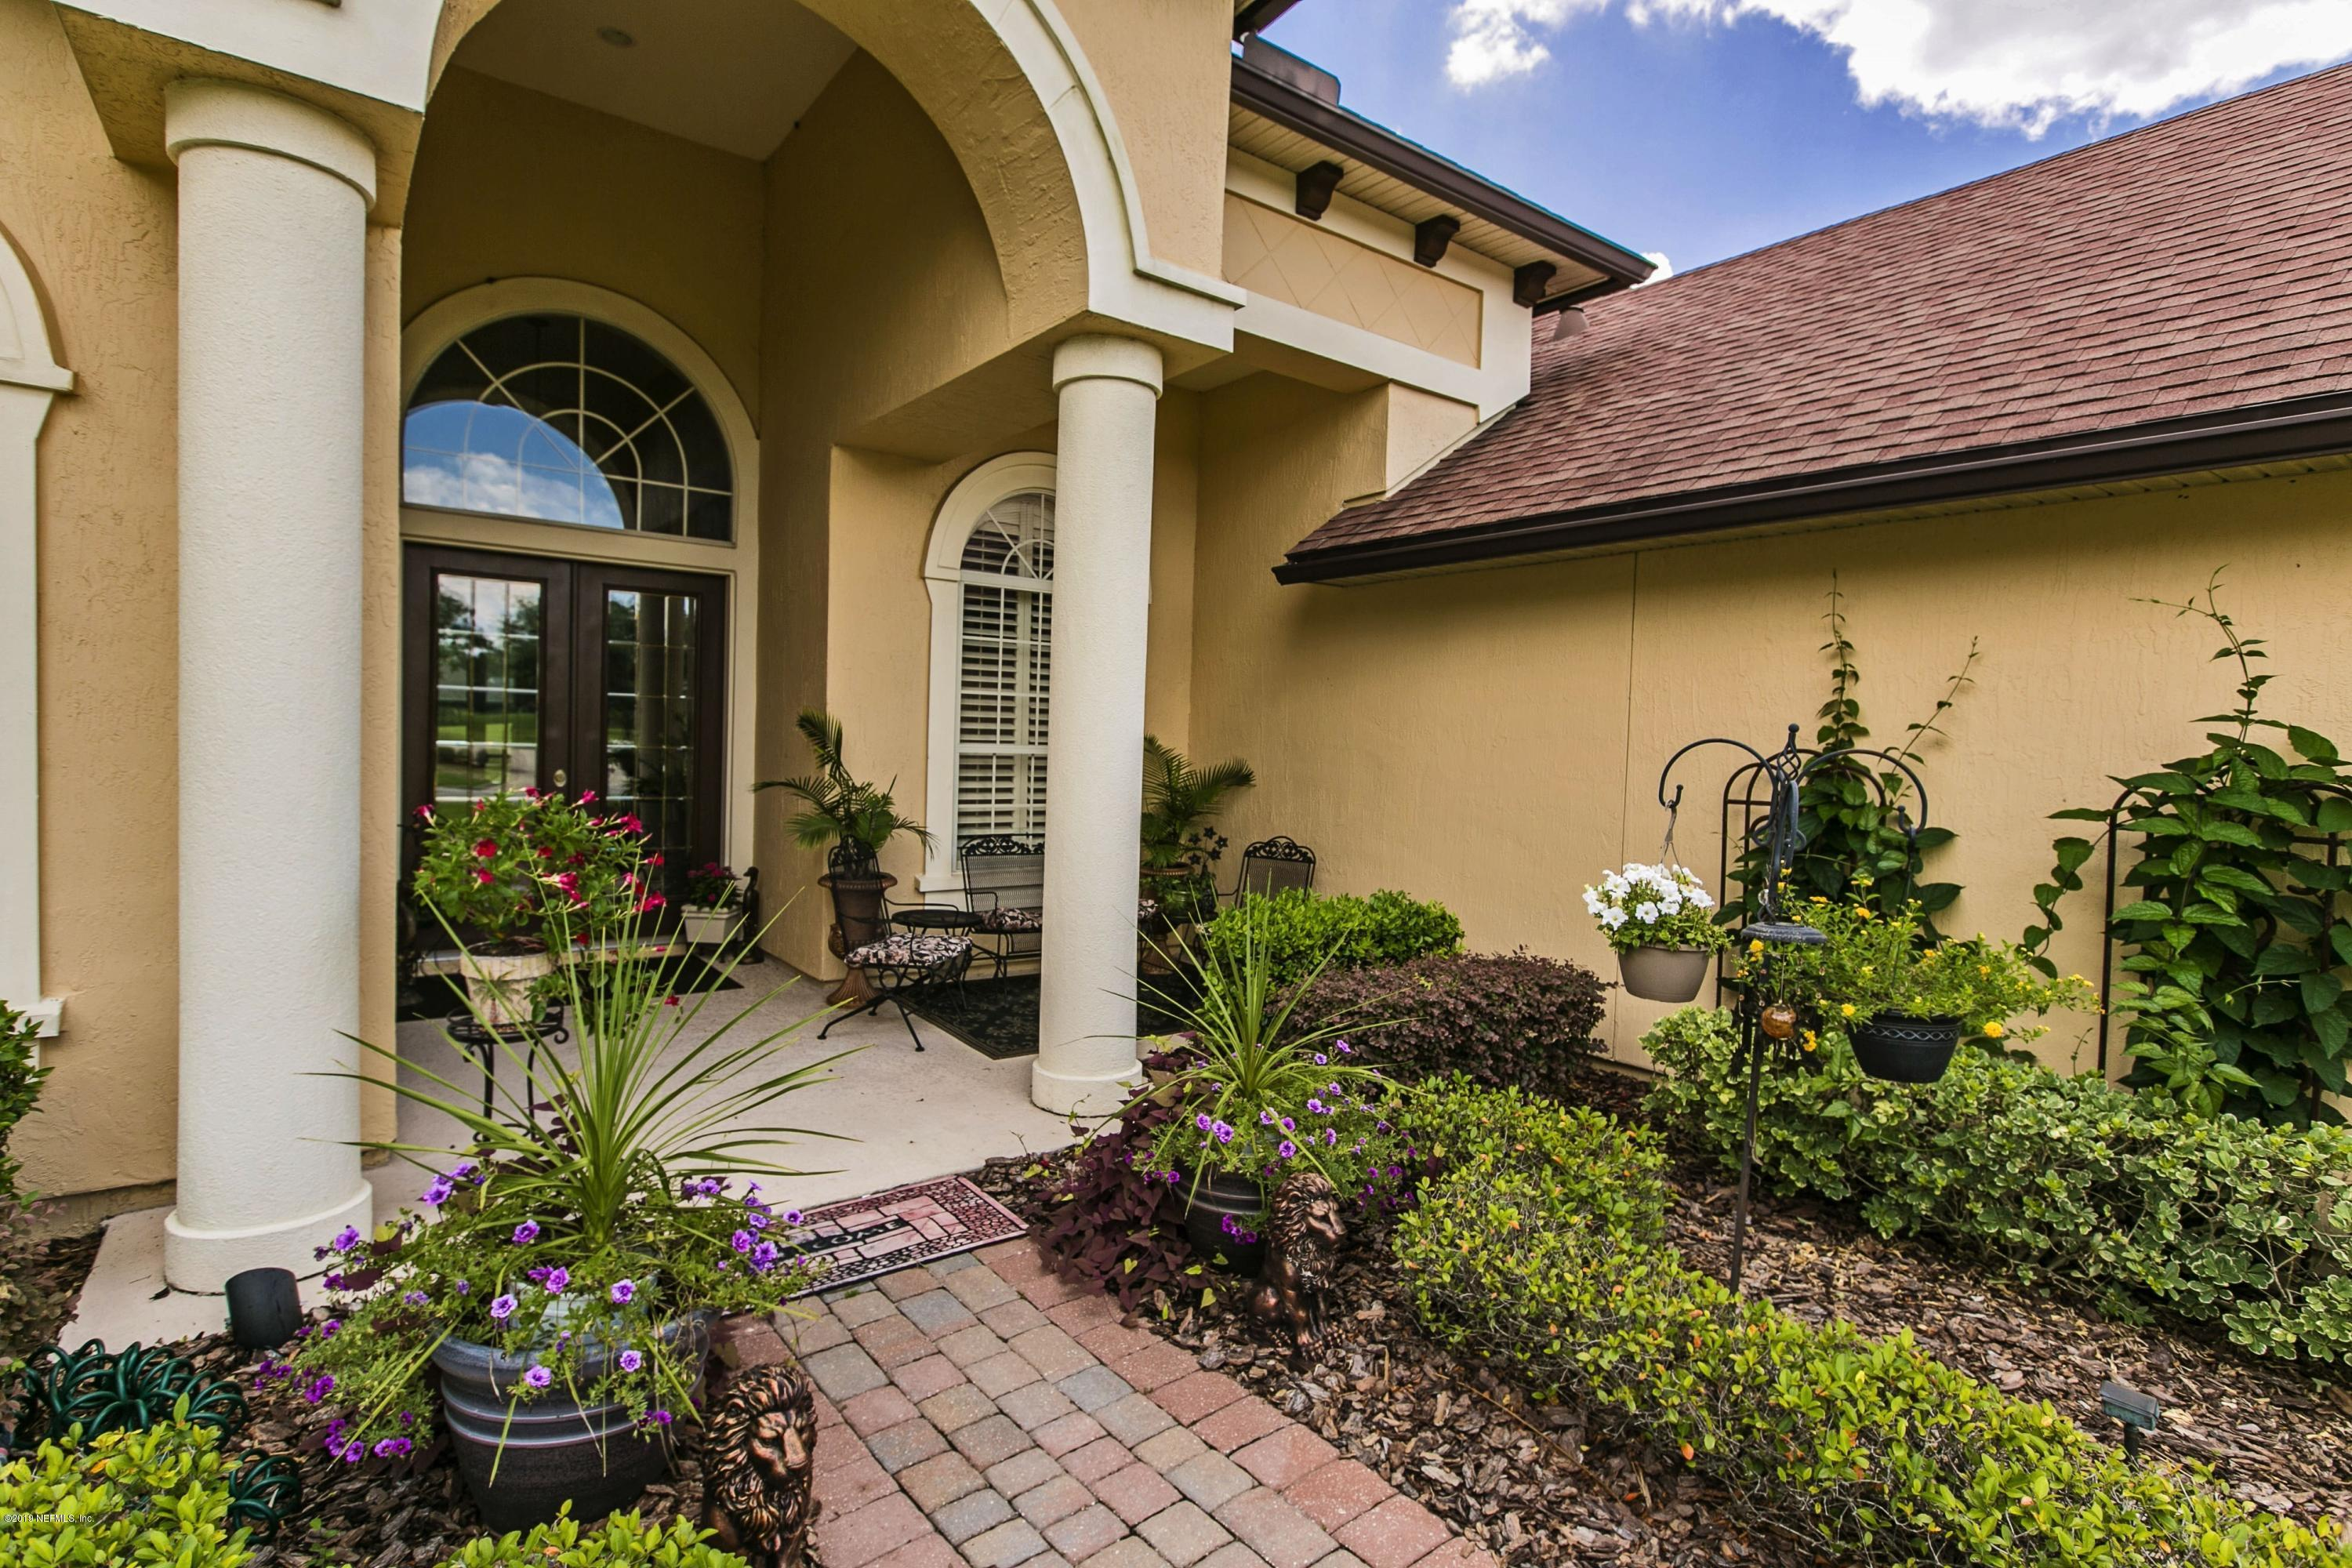 2133 QUAY, ST AUGUSTINE, FLORIDA 32092, 4 Bedrooms Bedrooms, ,4 BathroomsBathrooms,Residential - single family,For sale,QUAY,985260